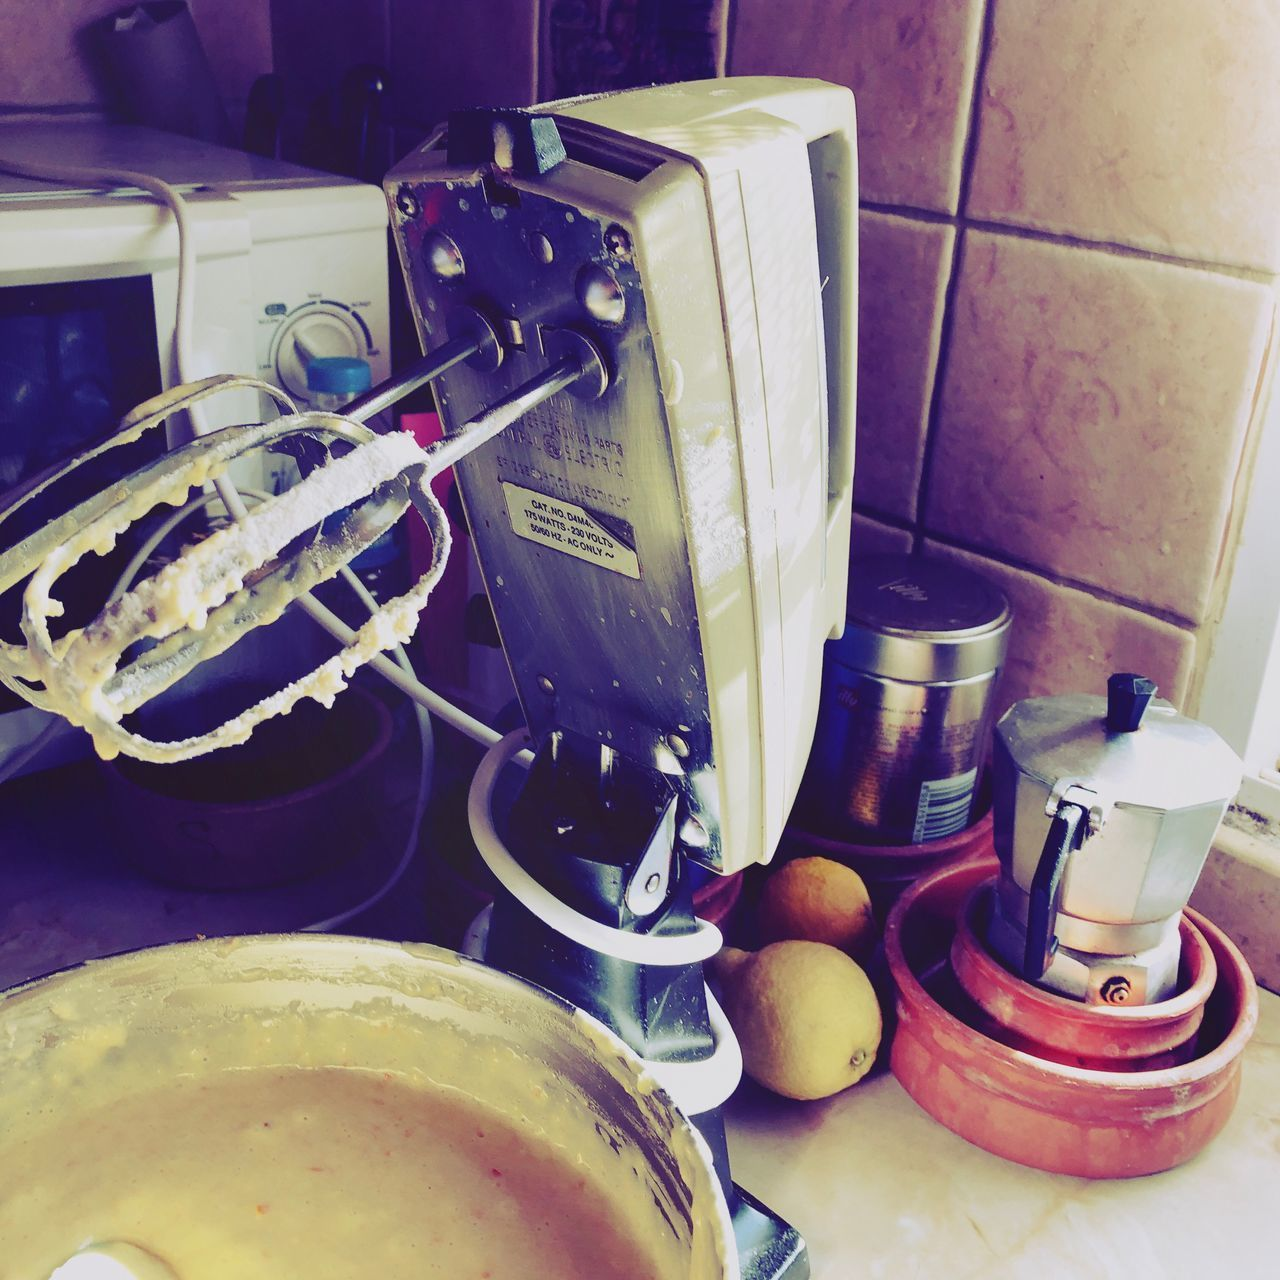 indoors, no people, food and drink, domestic room, food, still life, kitchen, high angle view, household equipment, kitchen utensil, container, close-up, table, wellbeing, healthy eating, home, fruit, hygiene, freshness, eating utensil